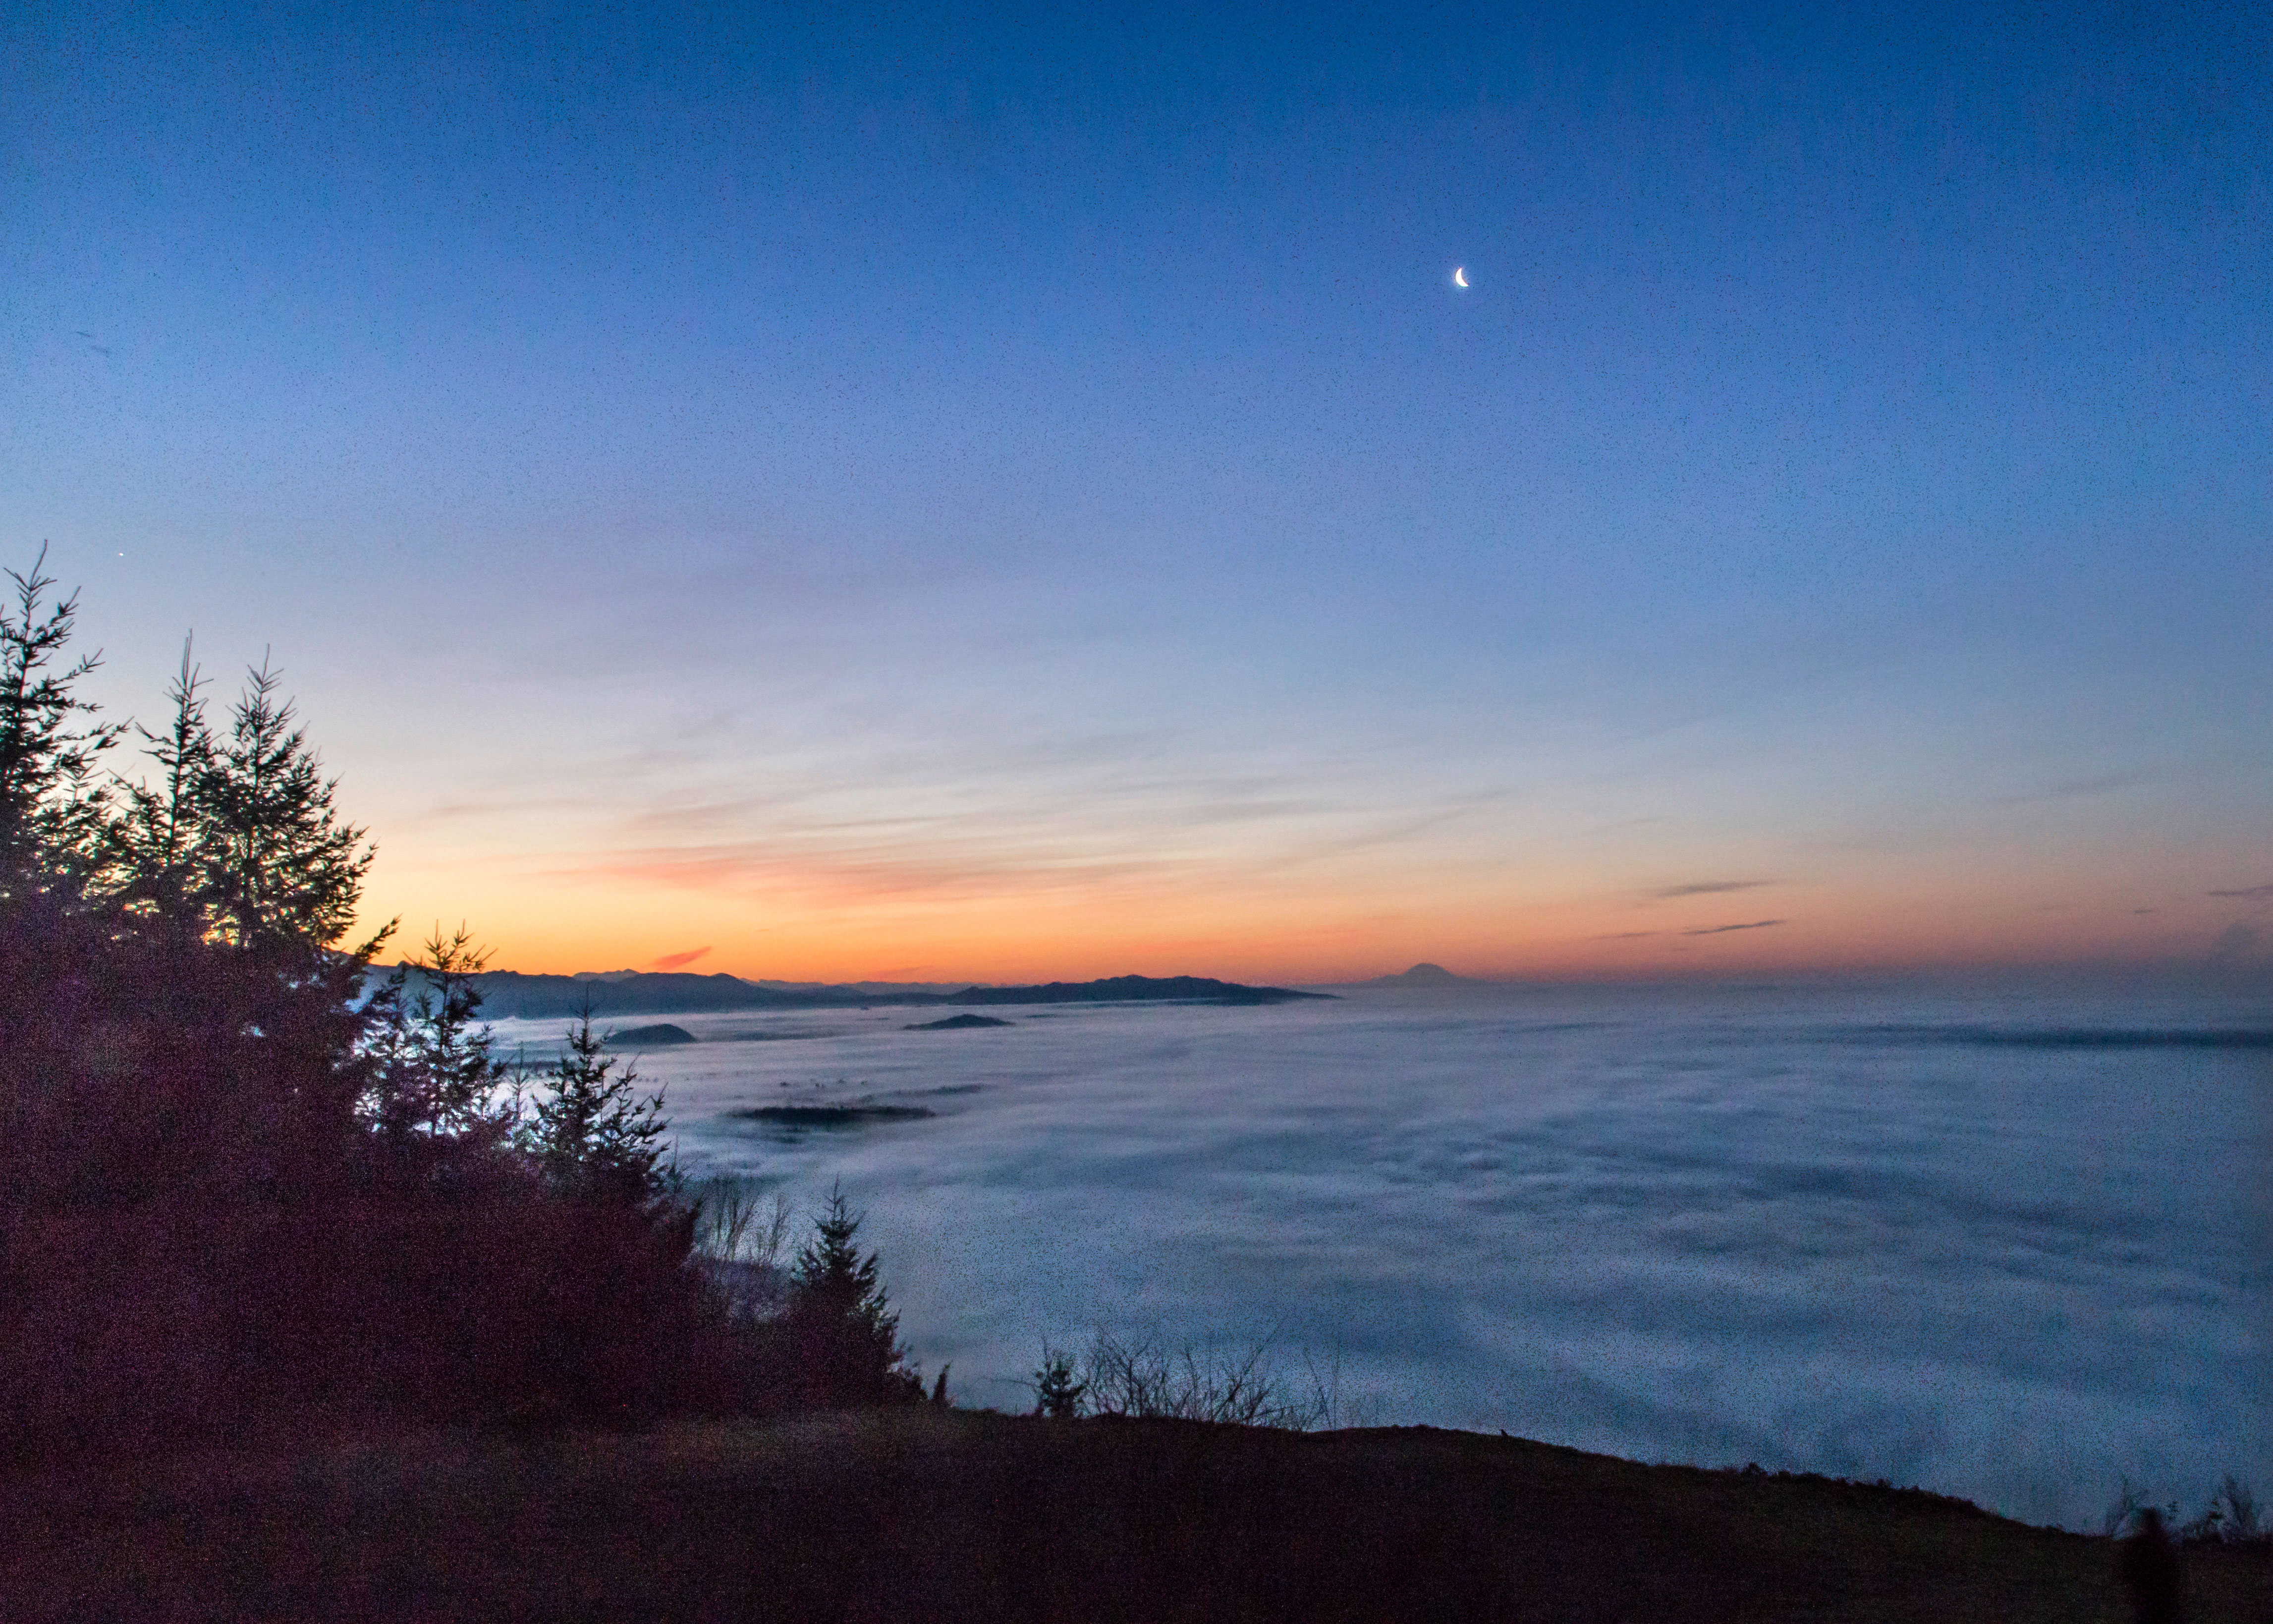 Sunrise over Skagit Valley | North Western Images - photos by Andy ...